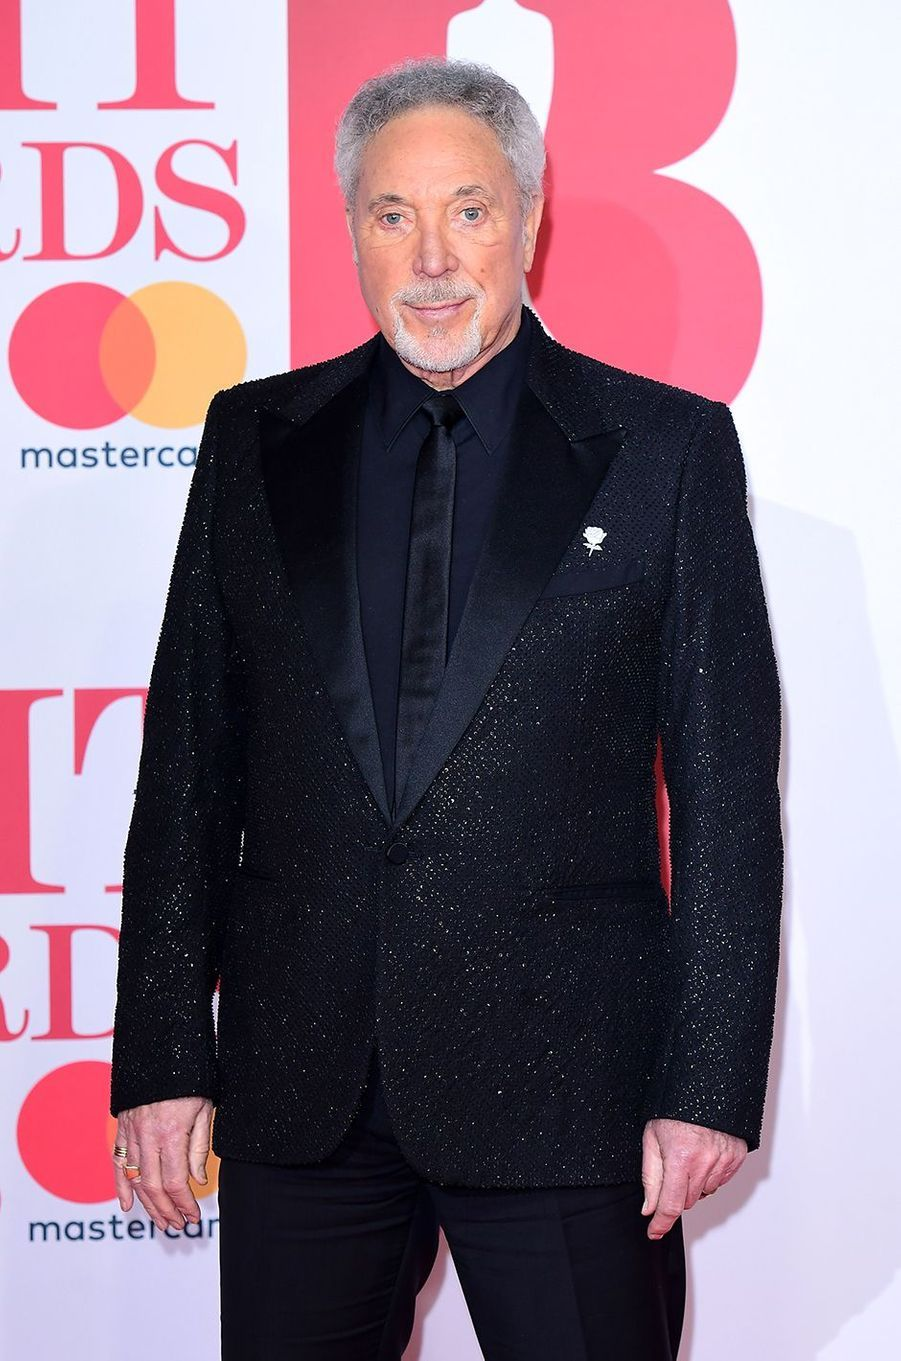 Sir Tom Jones à la cérémonie des Brit Awards 2018, le 21 février 2018.